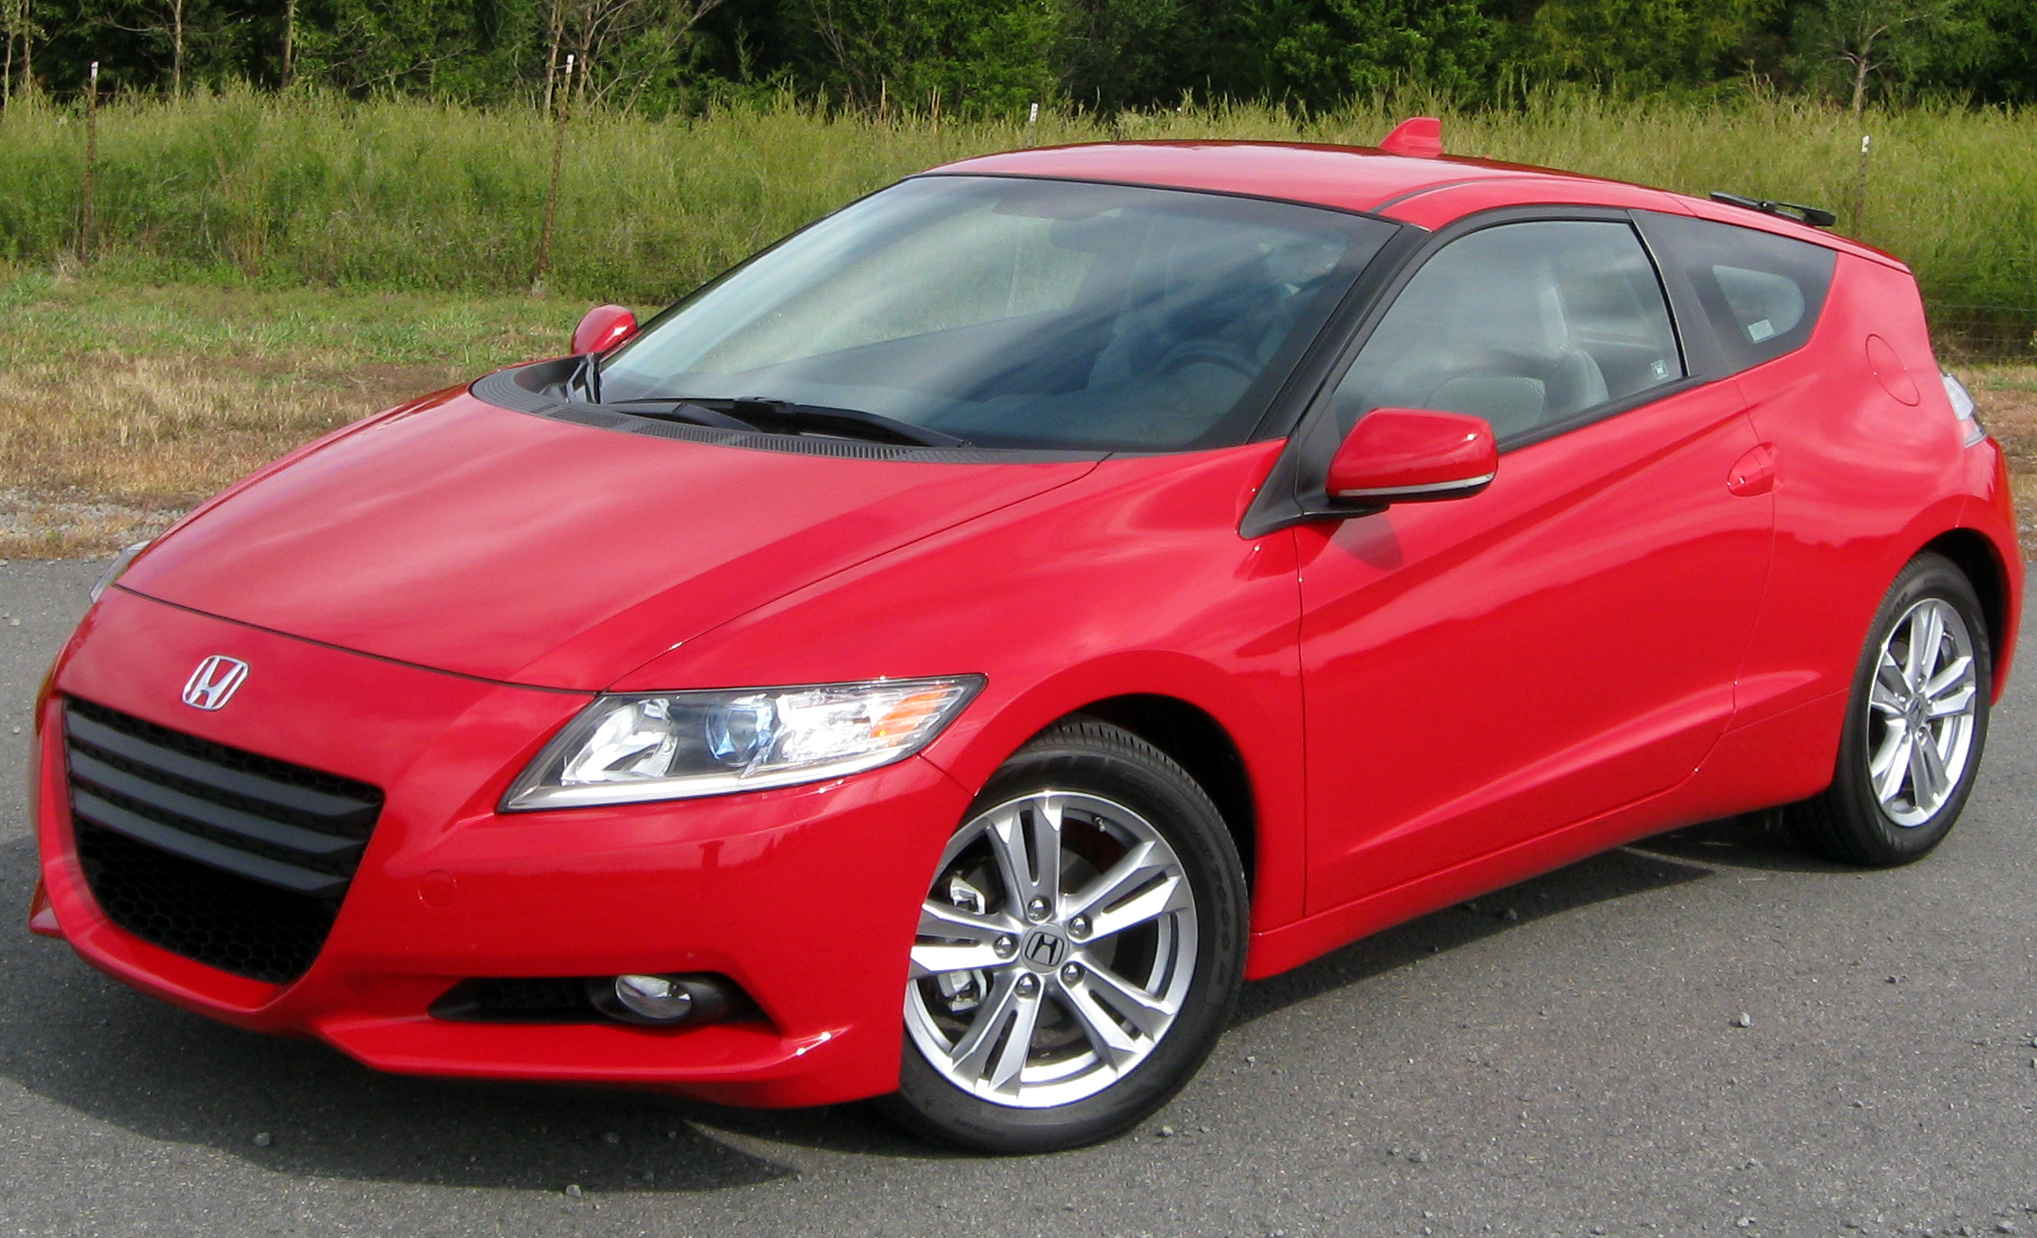 File:2011 Honda CR-Z EX -- 10-19-2010.jpg - Wikipedia, the free ...